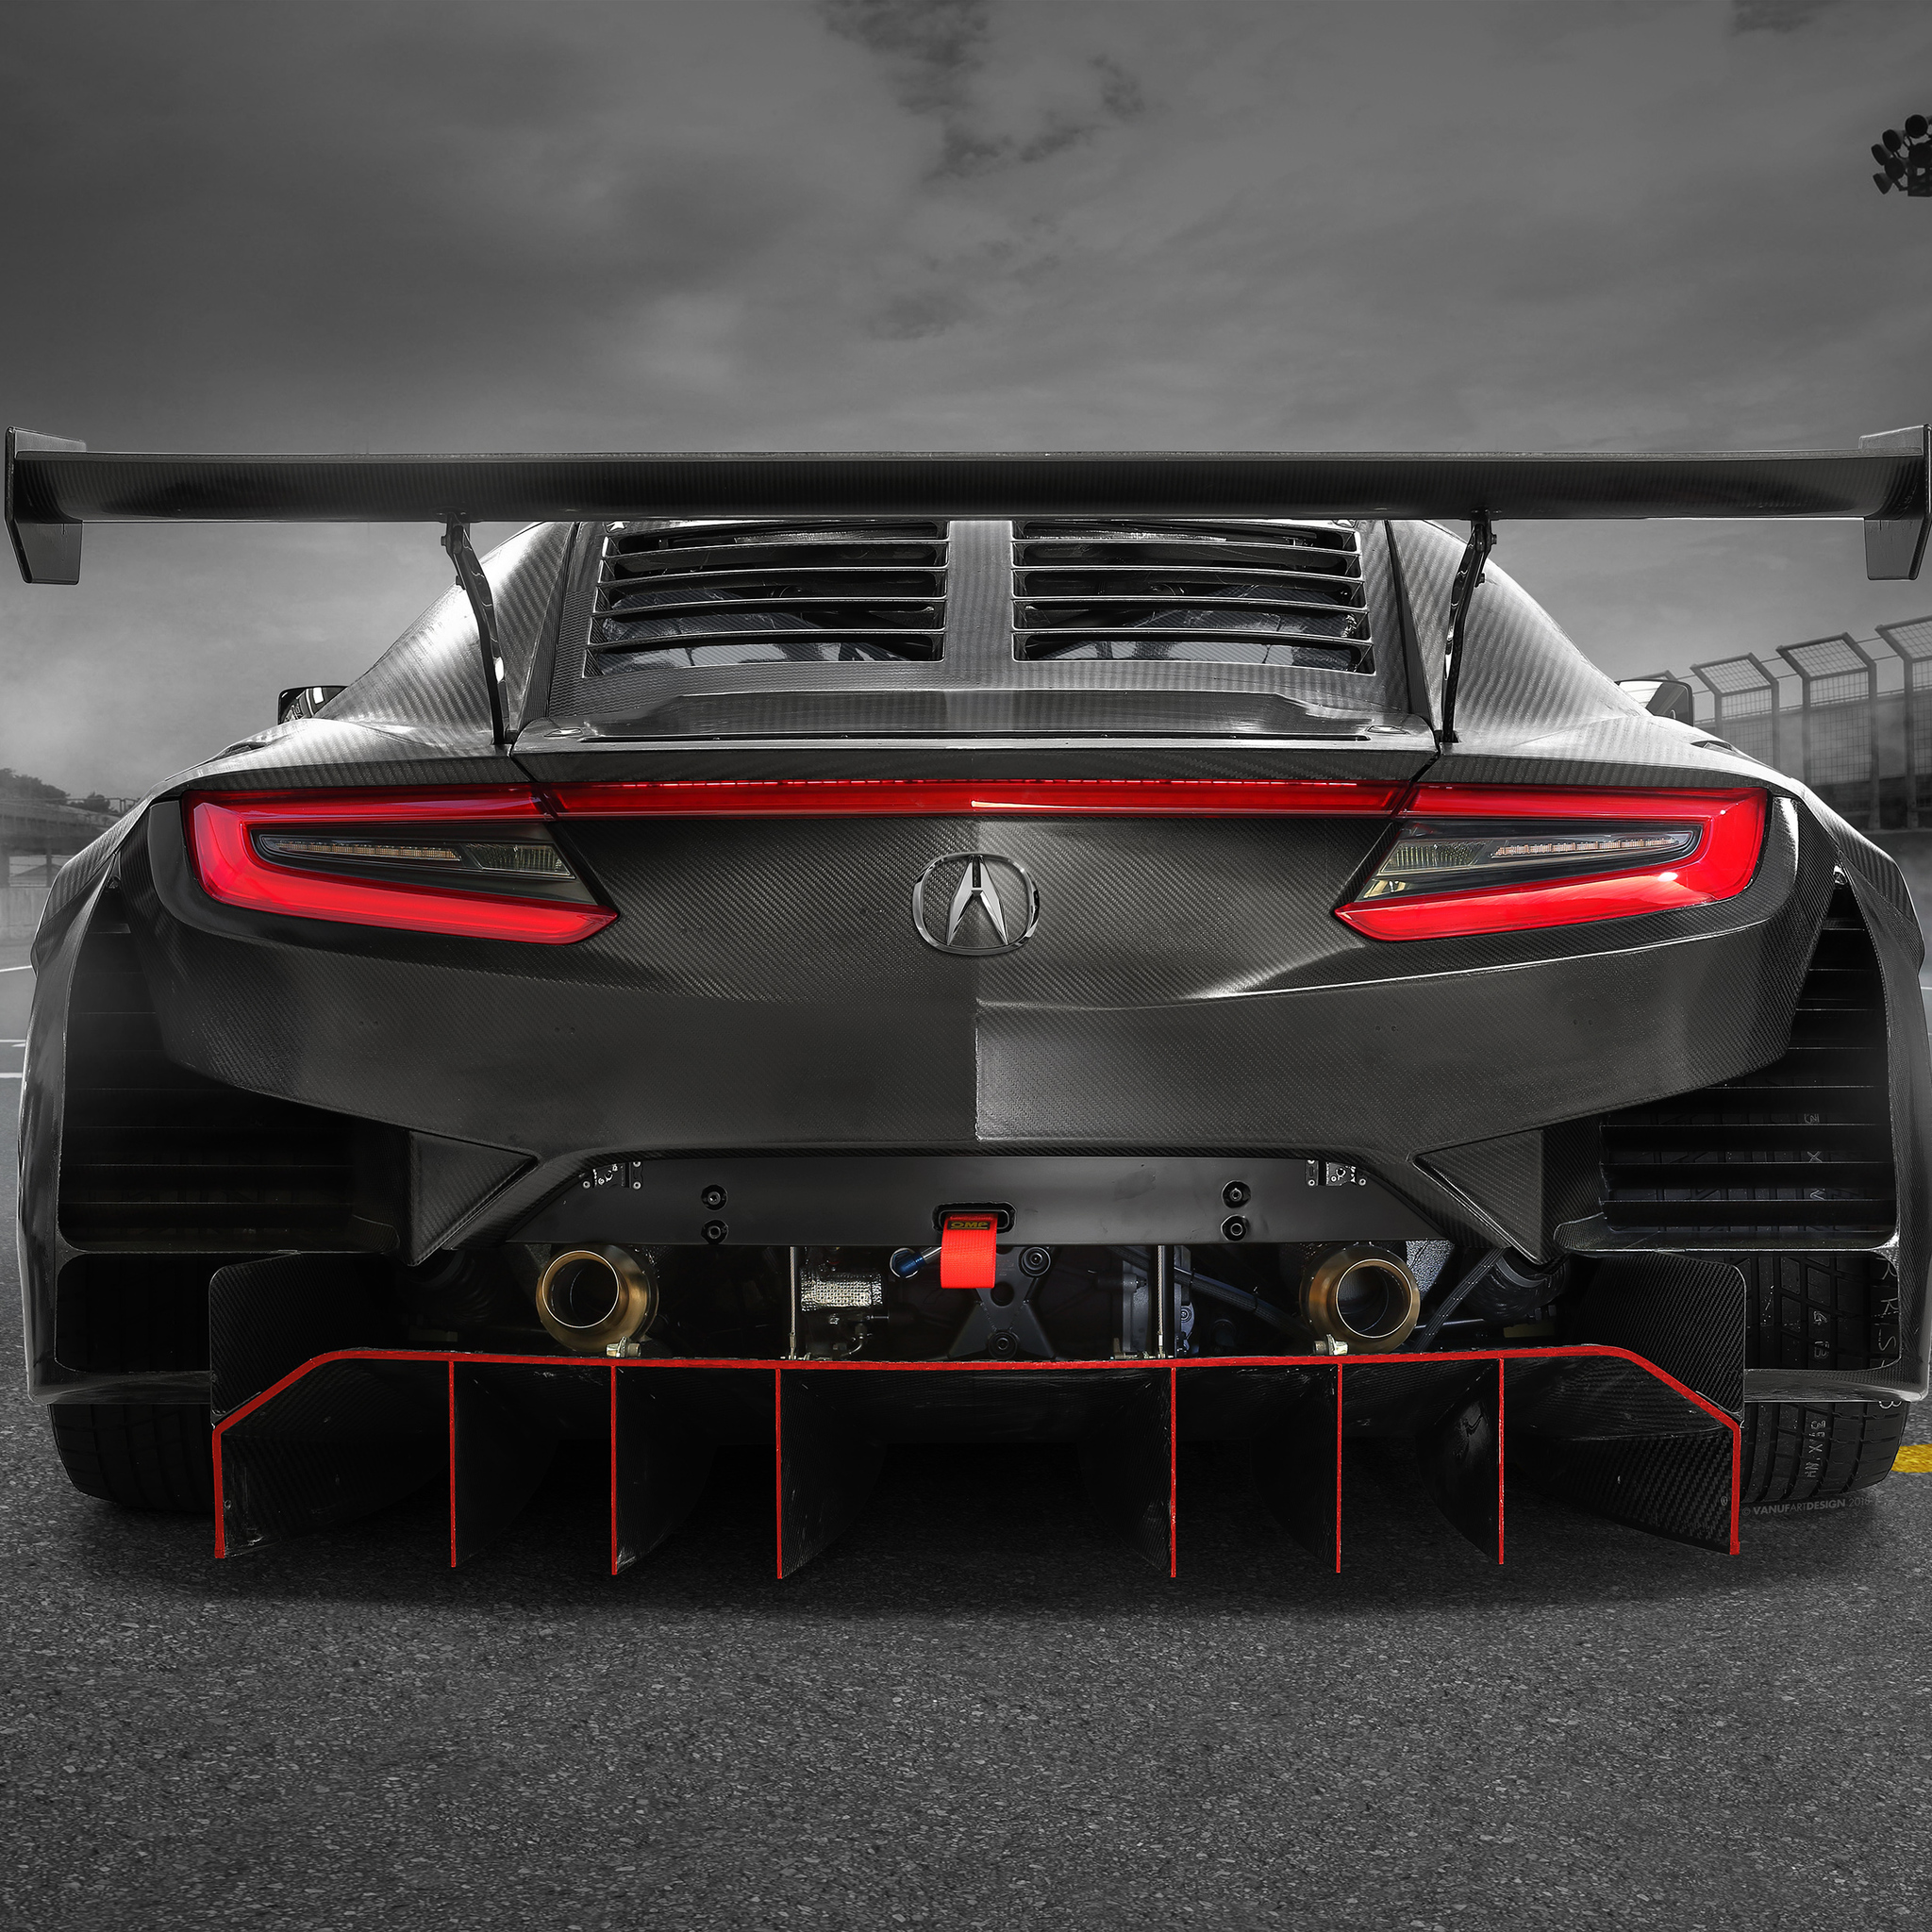 Supercars Gallery: Acura Nsx 2016 4k 5k Wallpapers